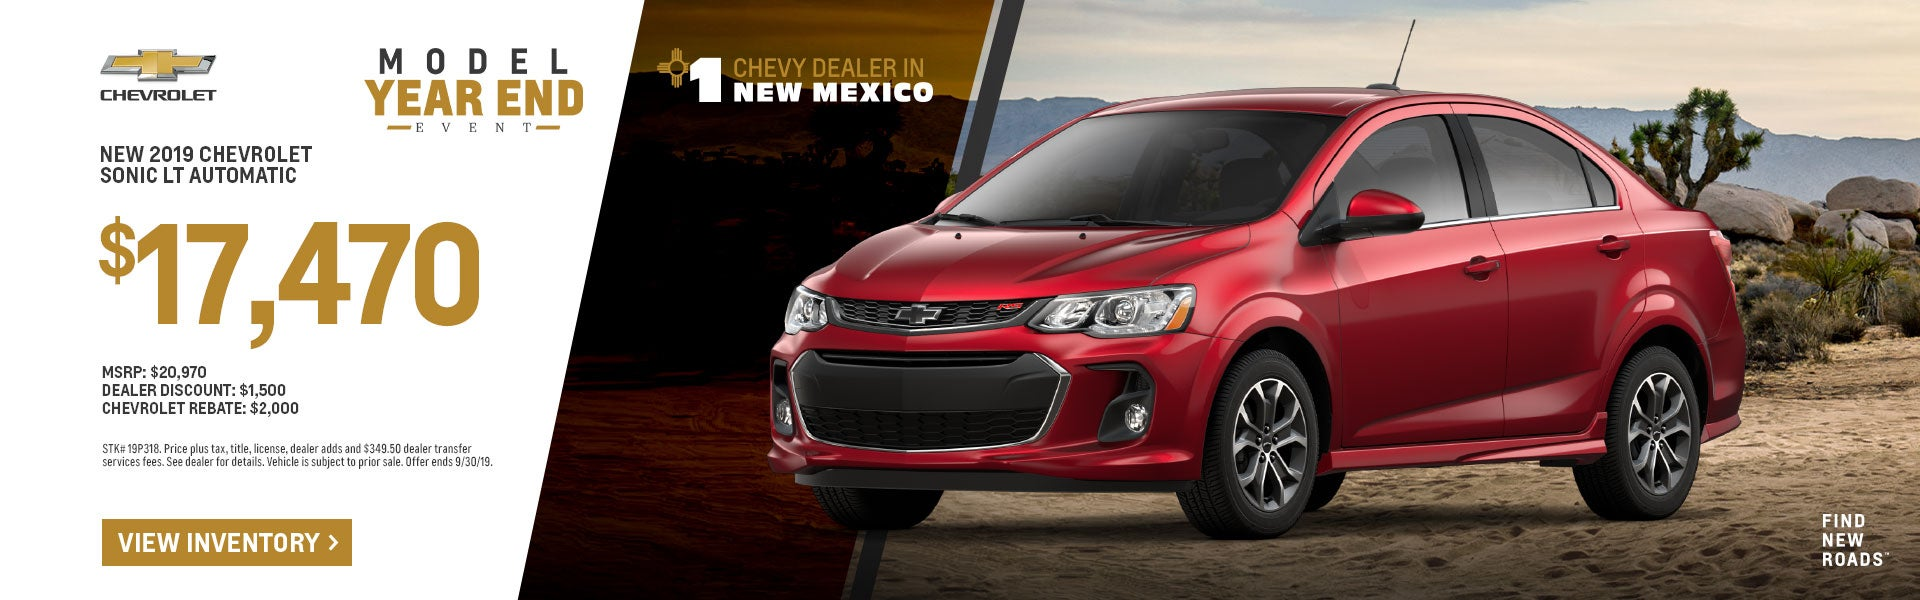 Galles Chevrolet In Albuquerque Is Truck Country